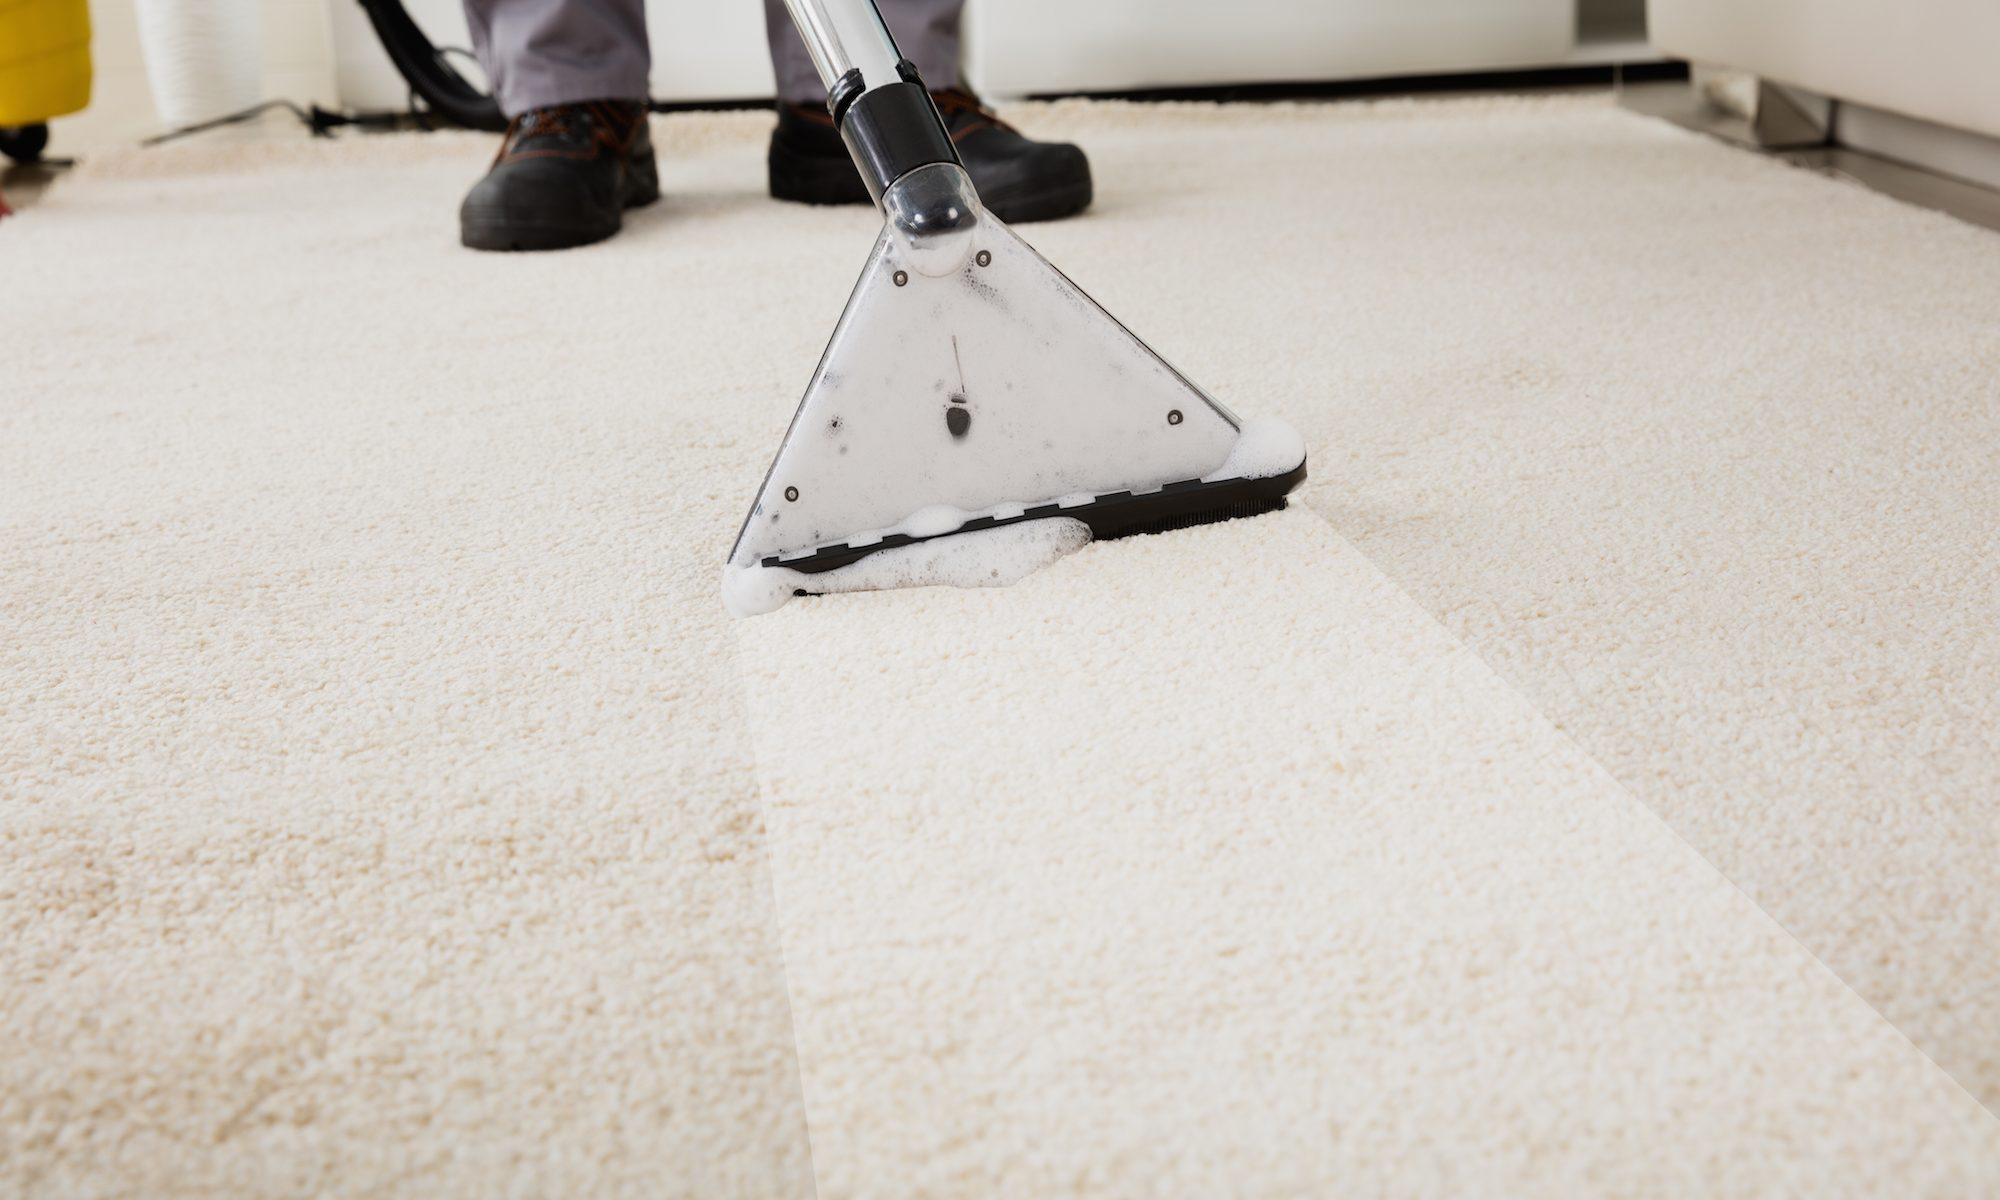 Equipment leaving a path of clean carpet behind it